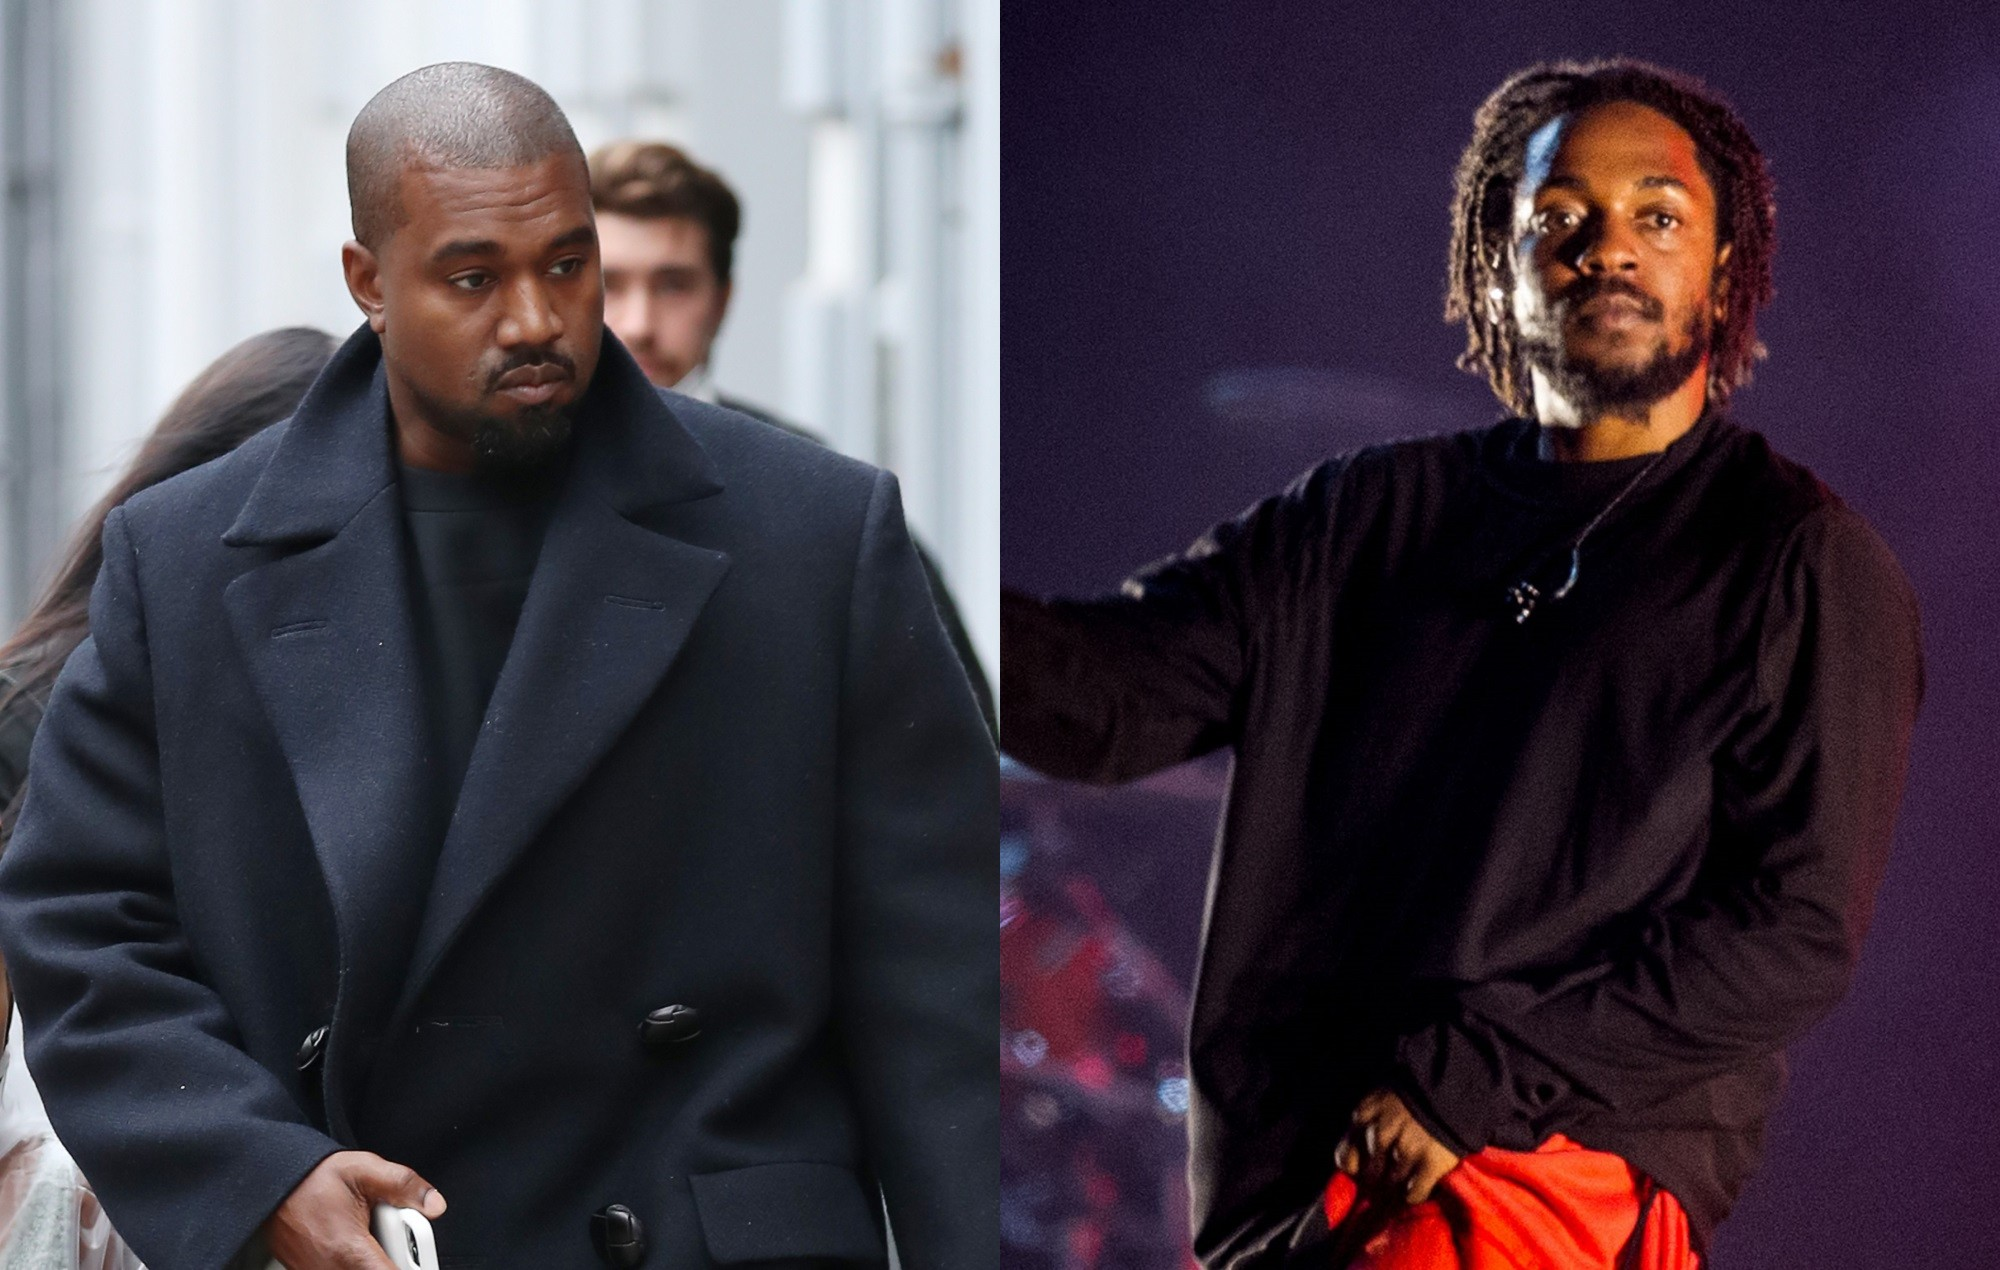 Hear Kanye West and Kendrick Lamar mashed up into 'Good Kid, Twisted Fantasy'